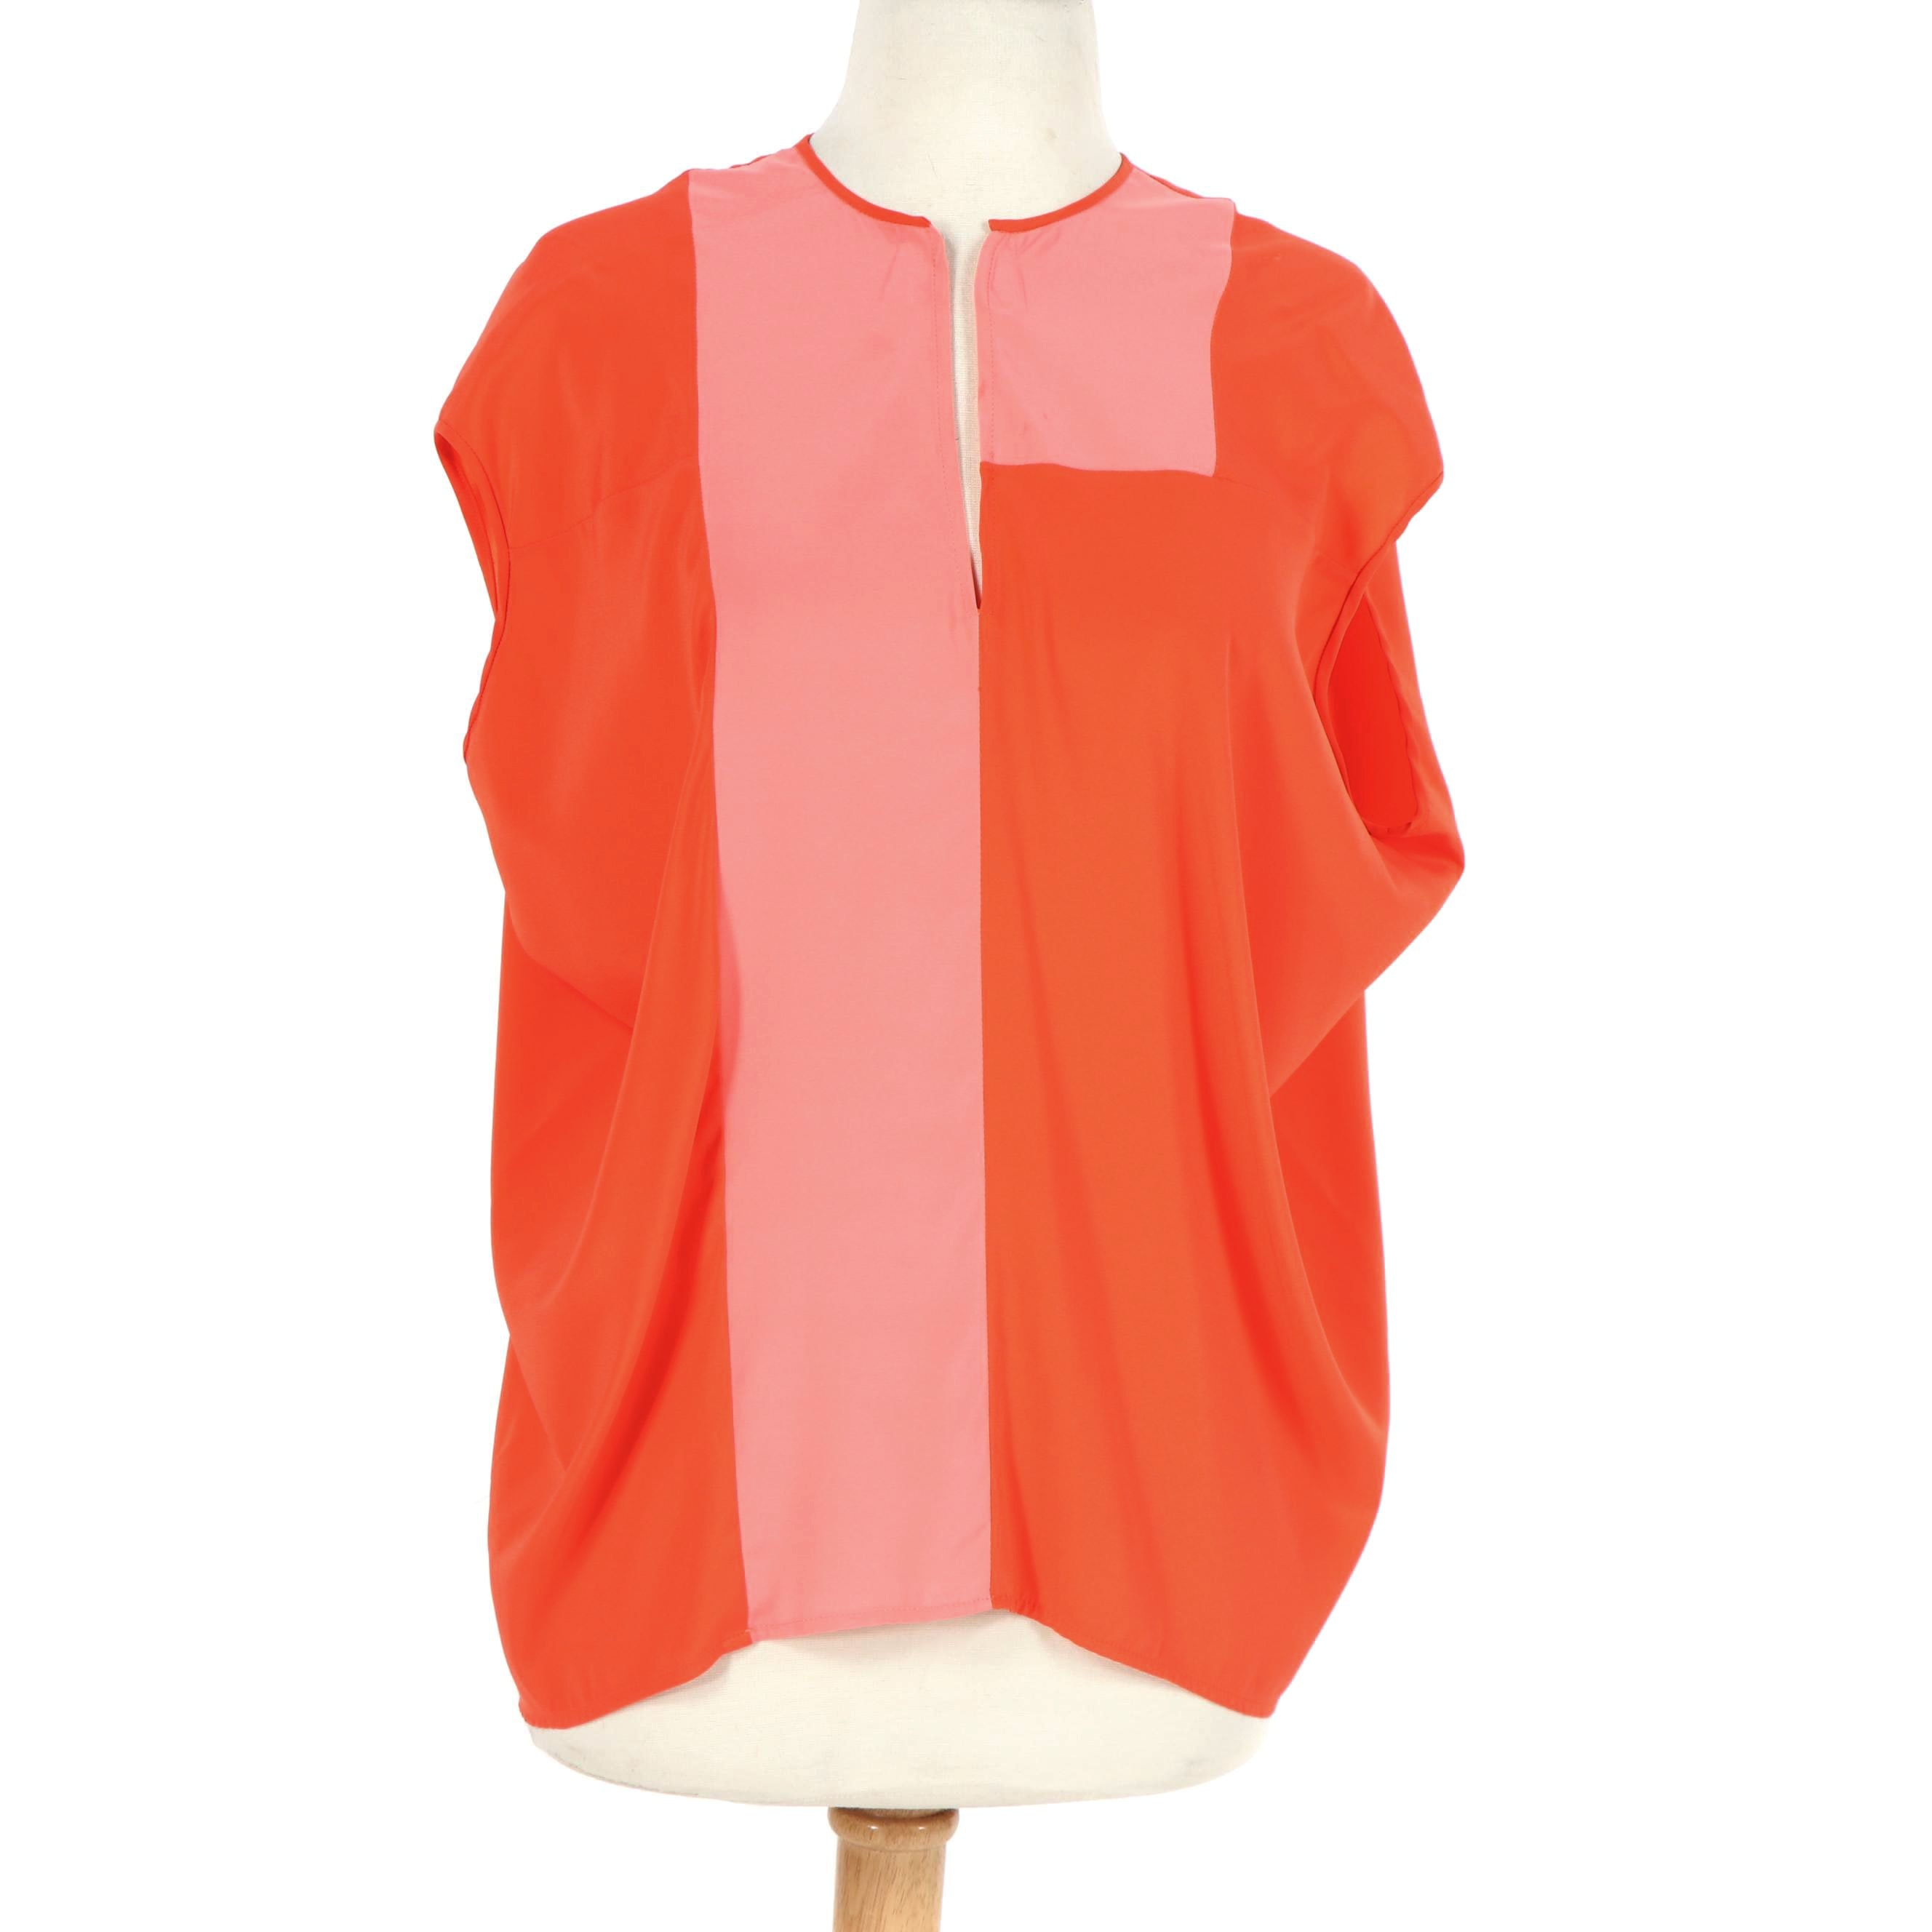 Women's Zero + Maria Cornejo Orange and Pink Silk Charmeuse Blouse, Made in NY